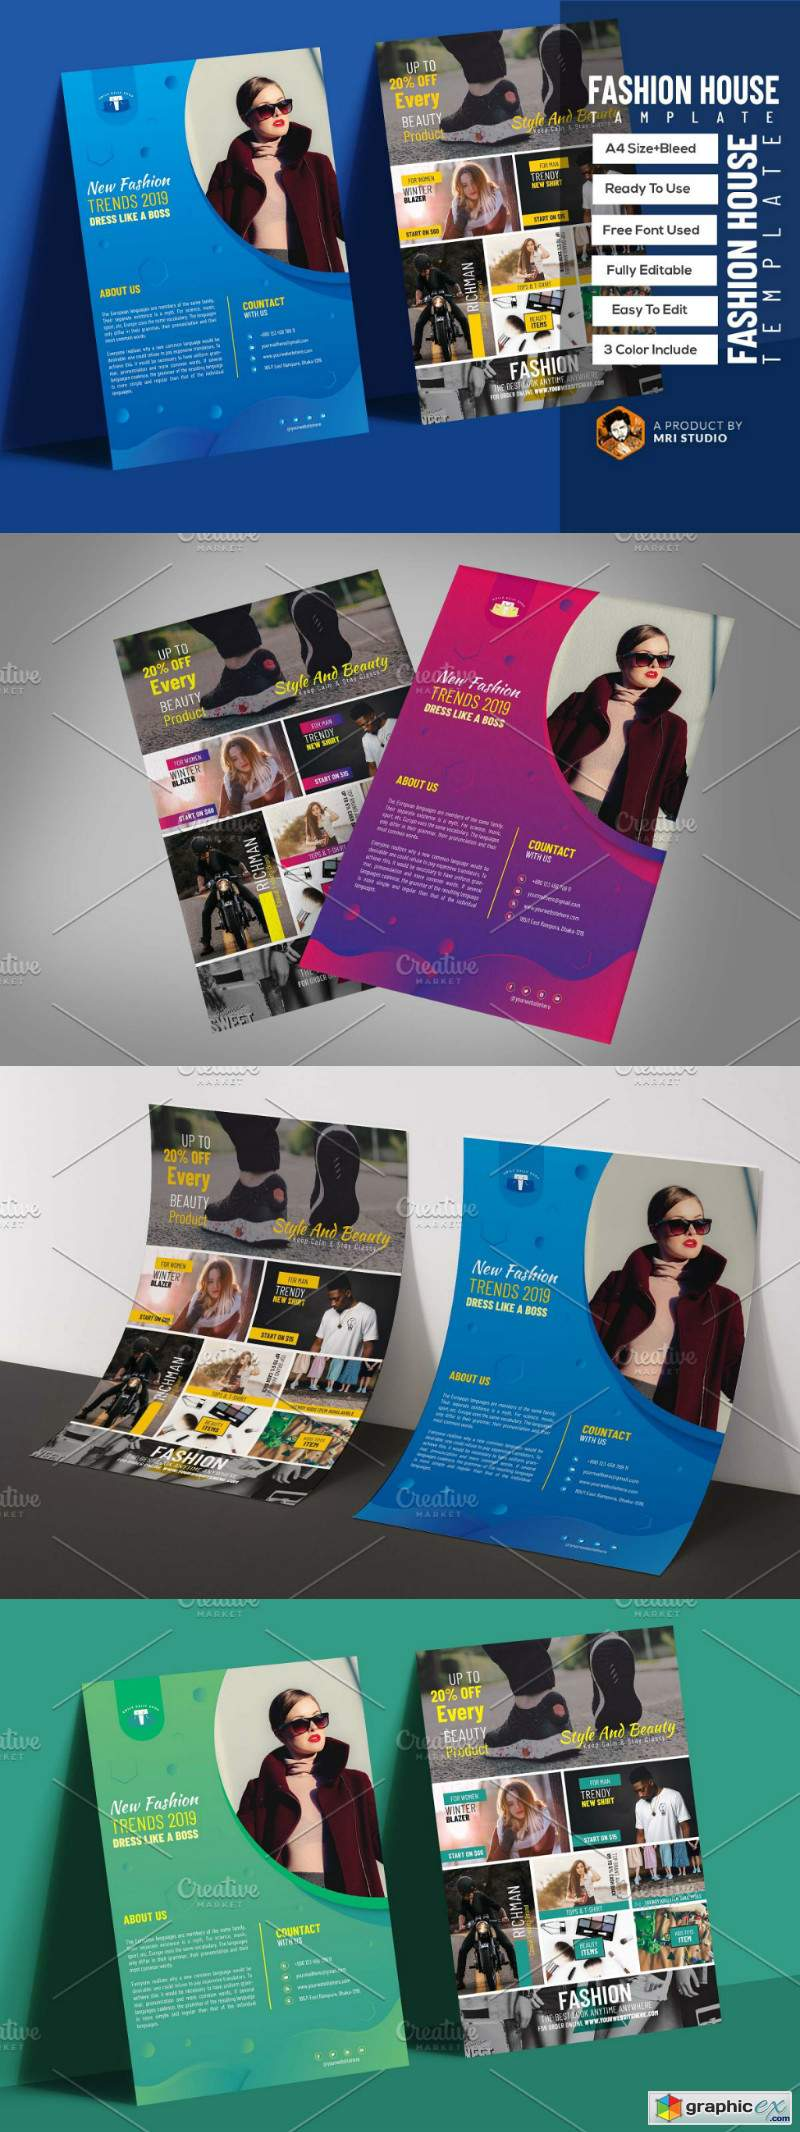 Fashion House Flyer Template